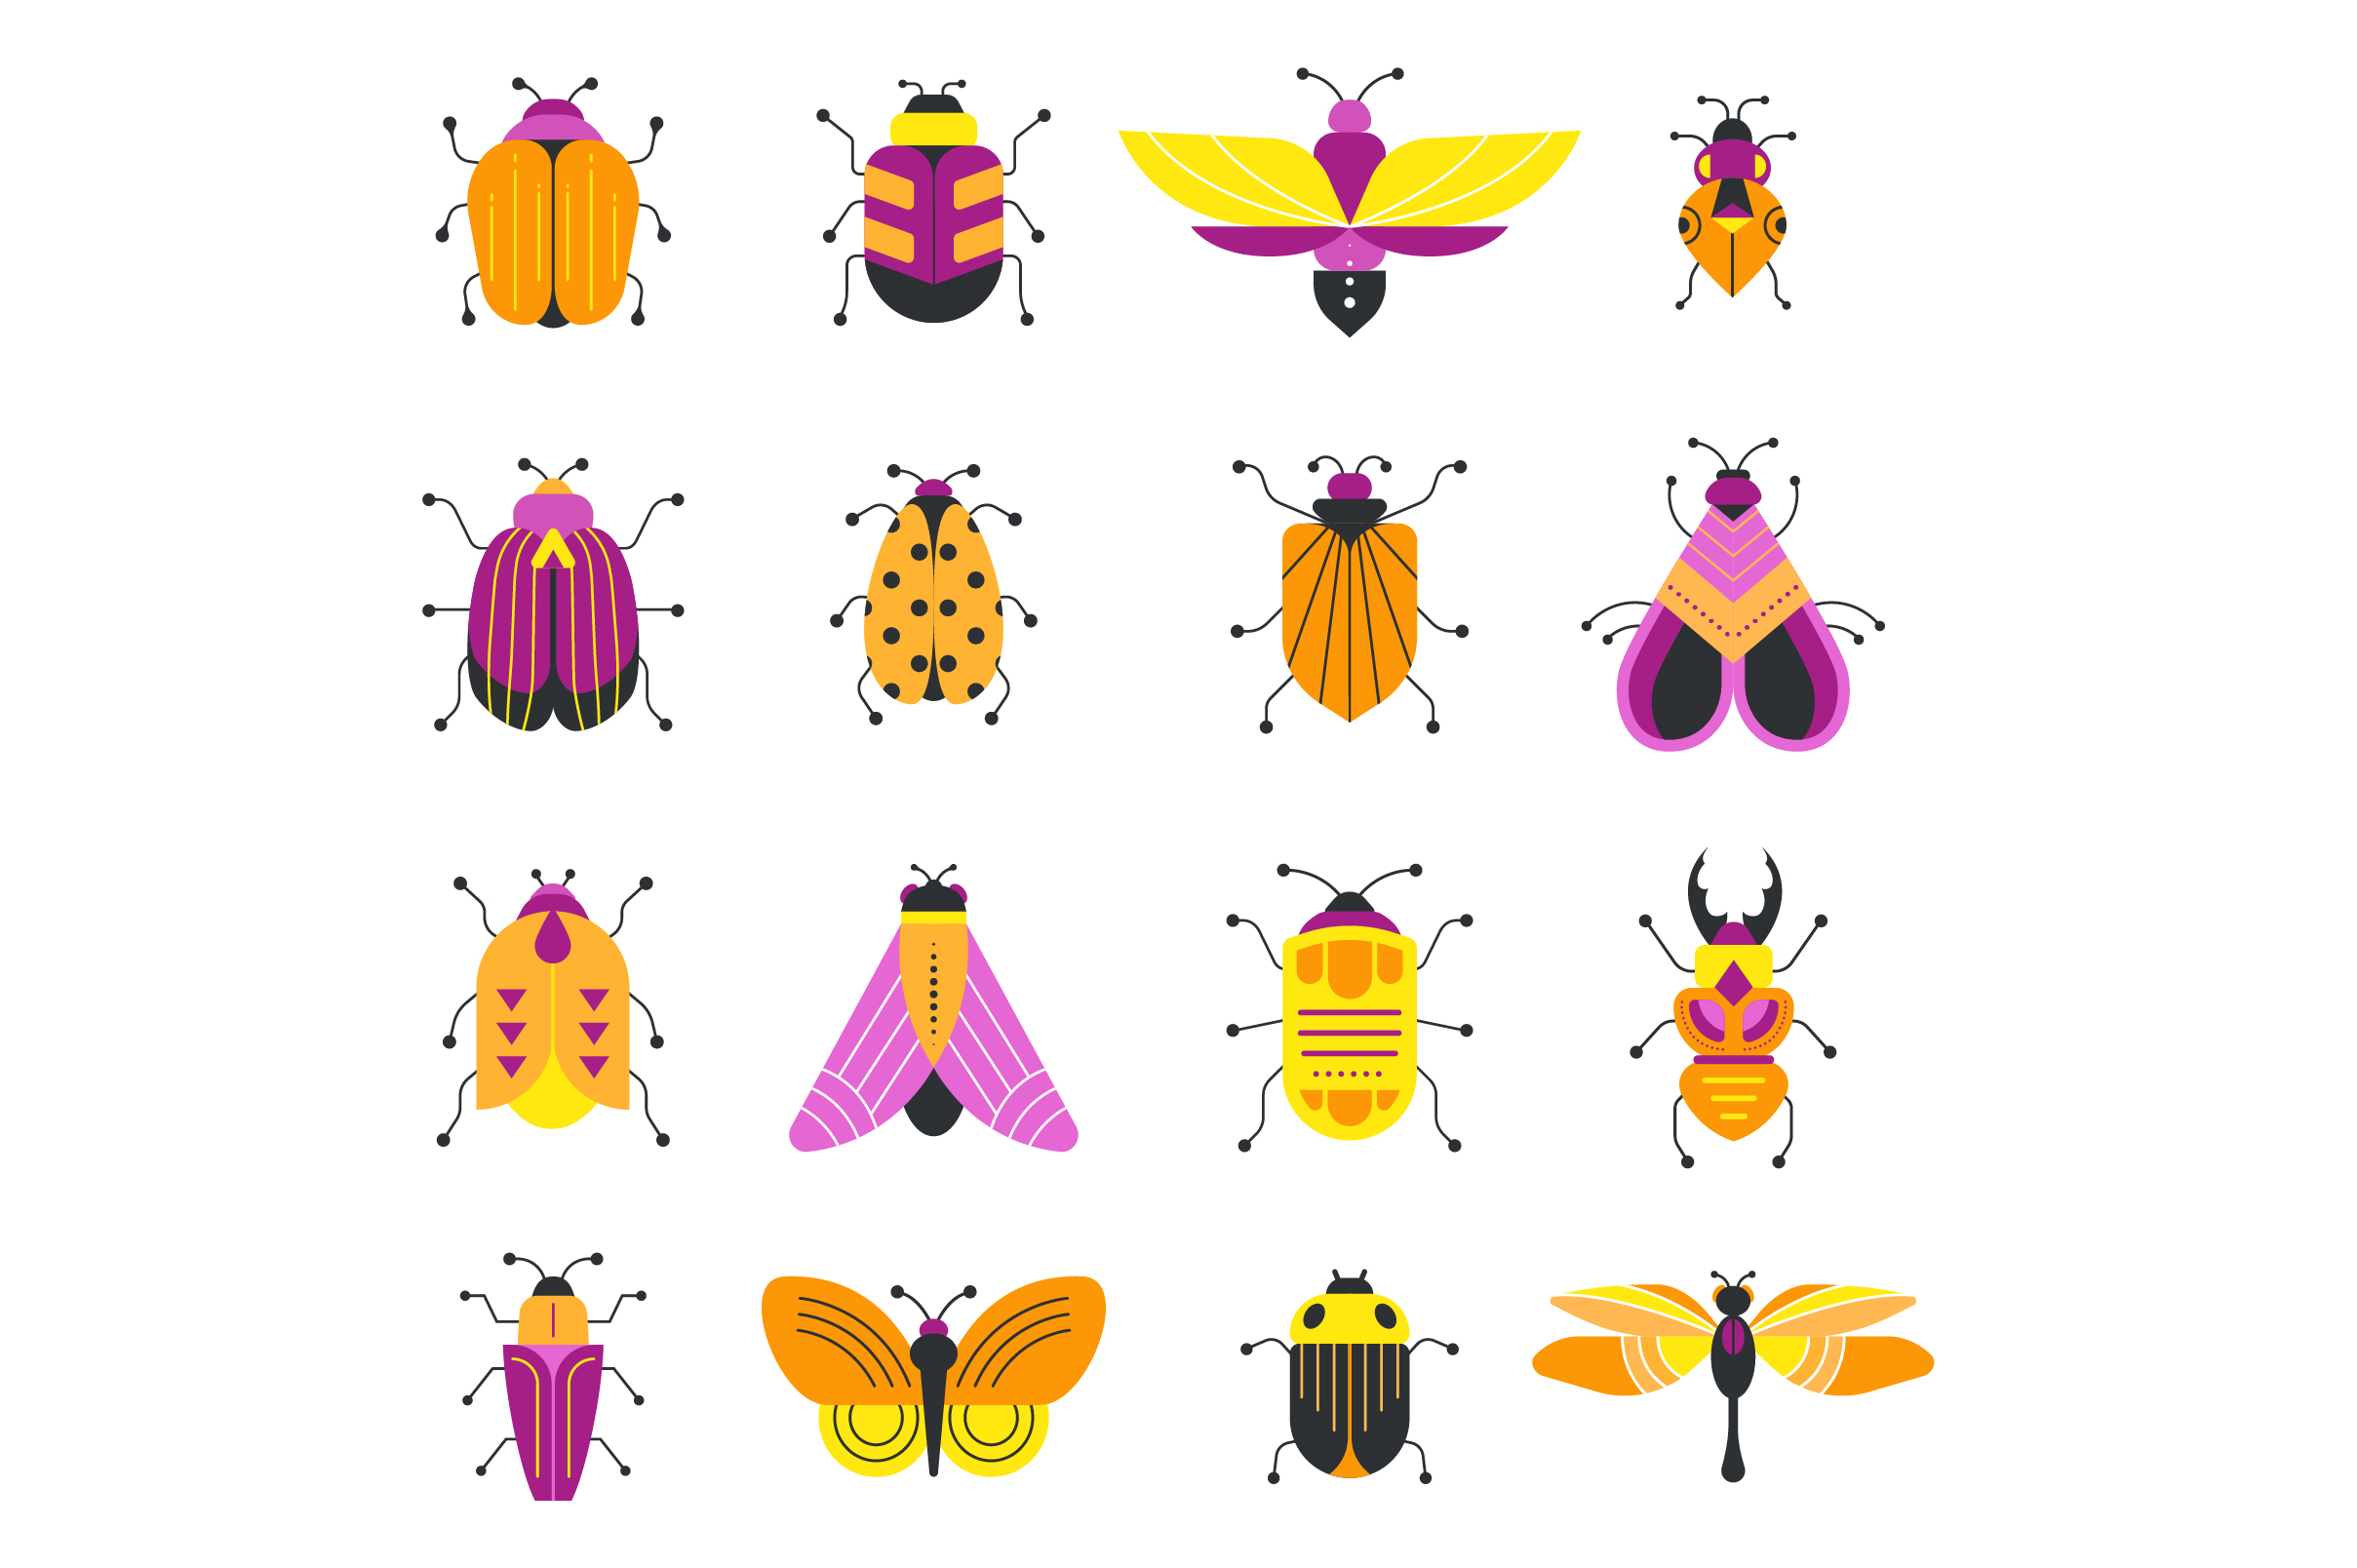 Bugs and insects collection  example image 8